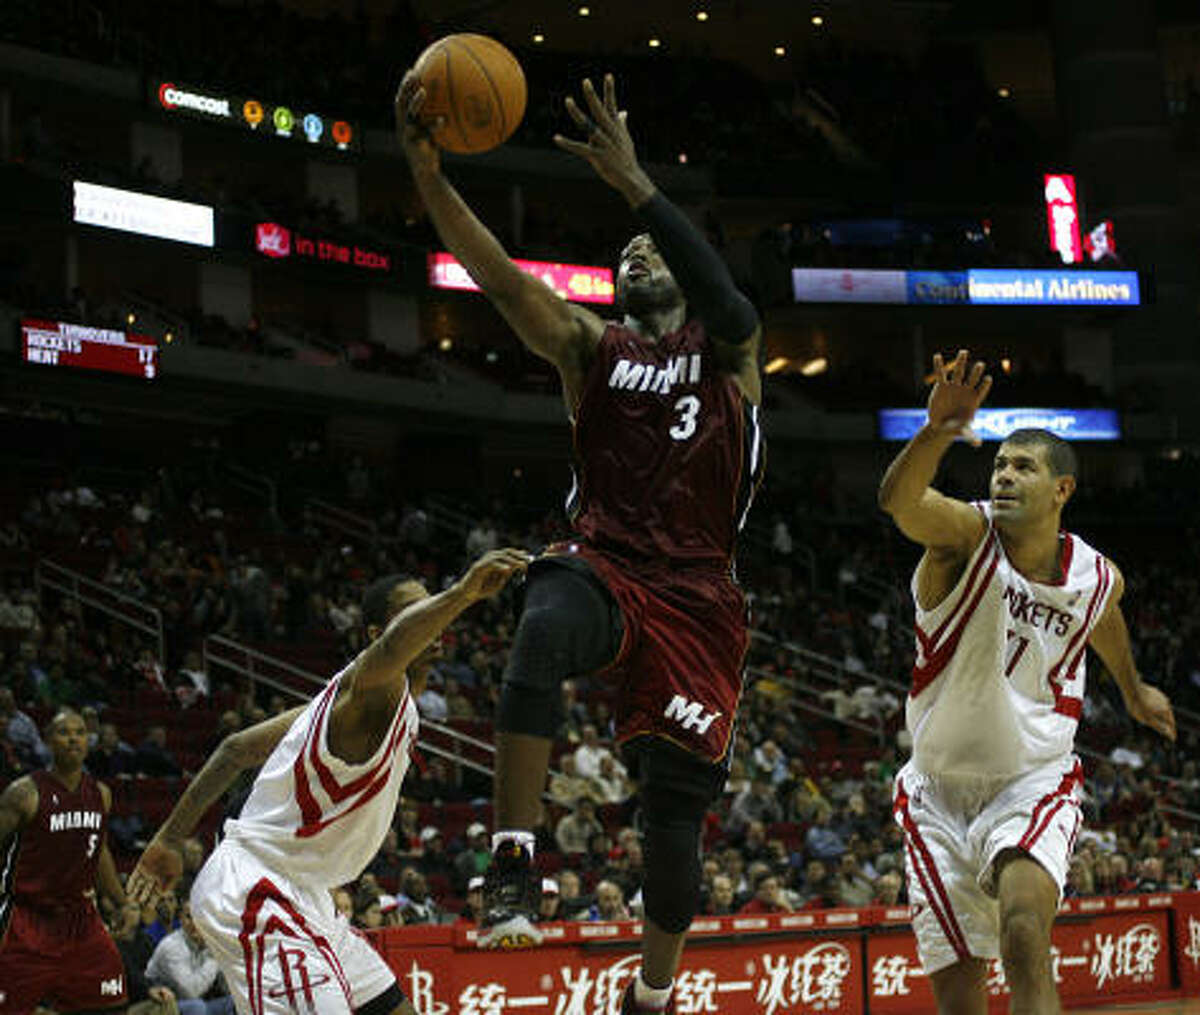 Heat guard Dwayne Wade sliced through the Rockets' defense on his way to 37 points in Miami's win.